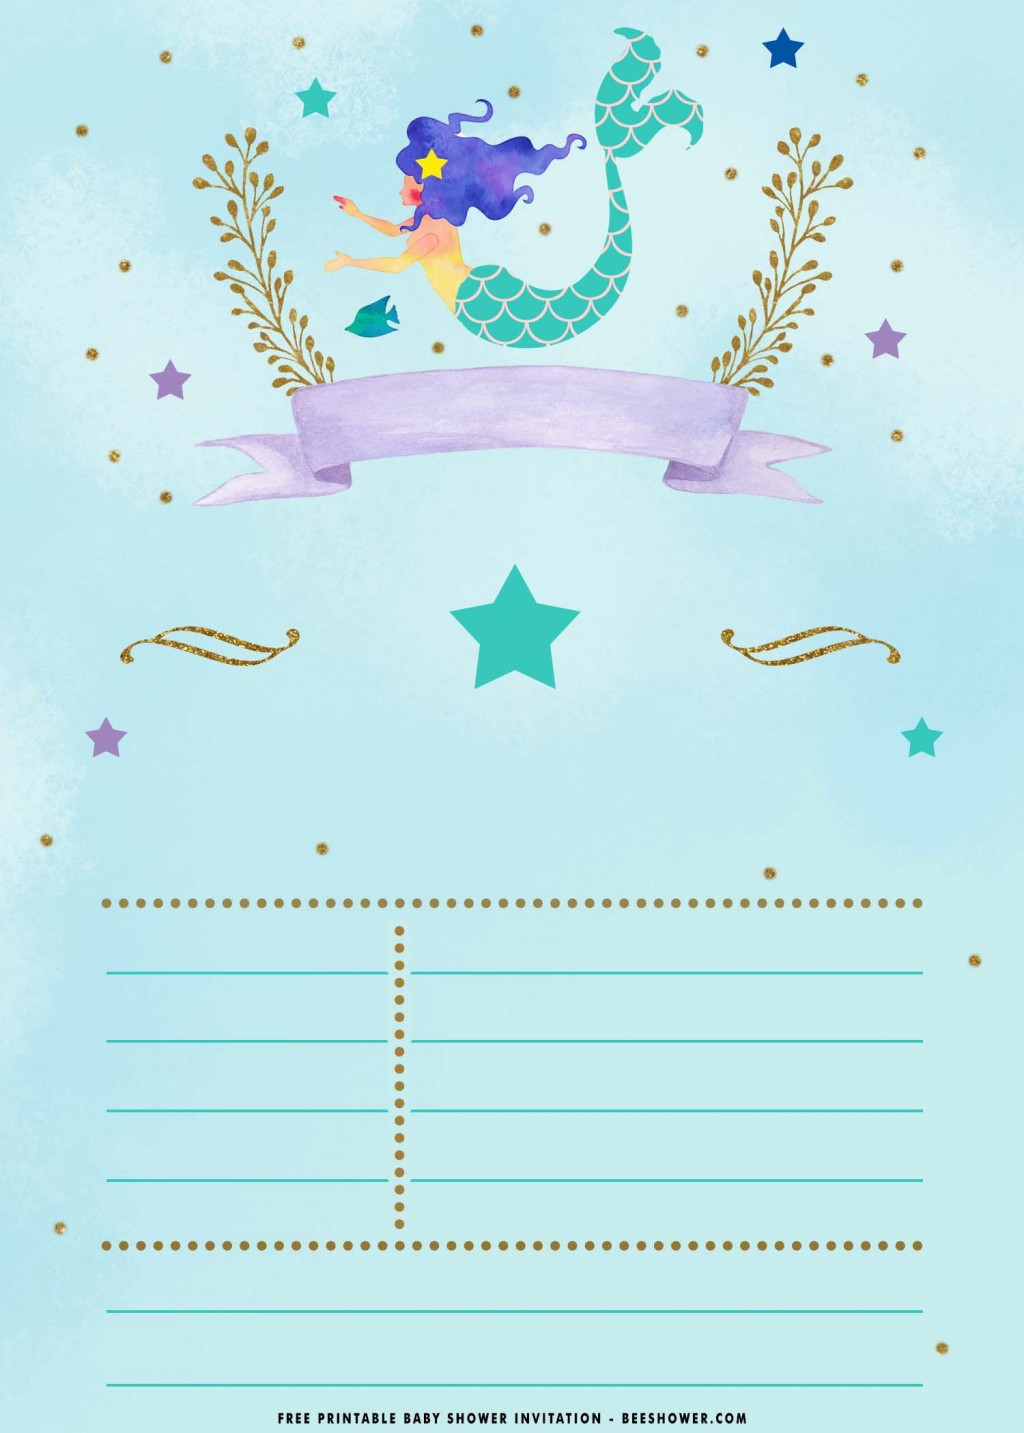 010 Breathtaking Free Mermaid Invitation Template Design  Download Printable Little Birthday Baby ShowerLarge